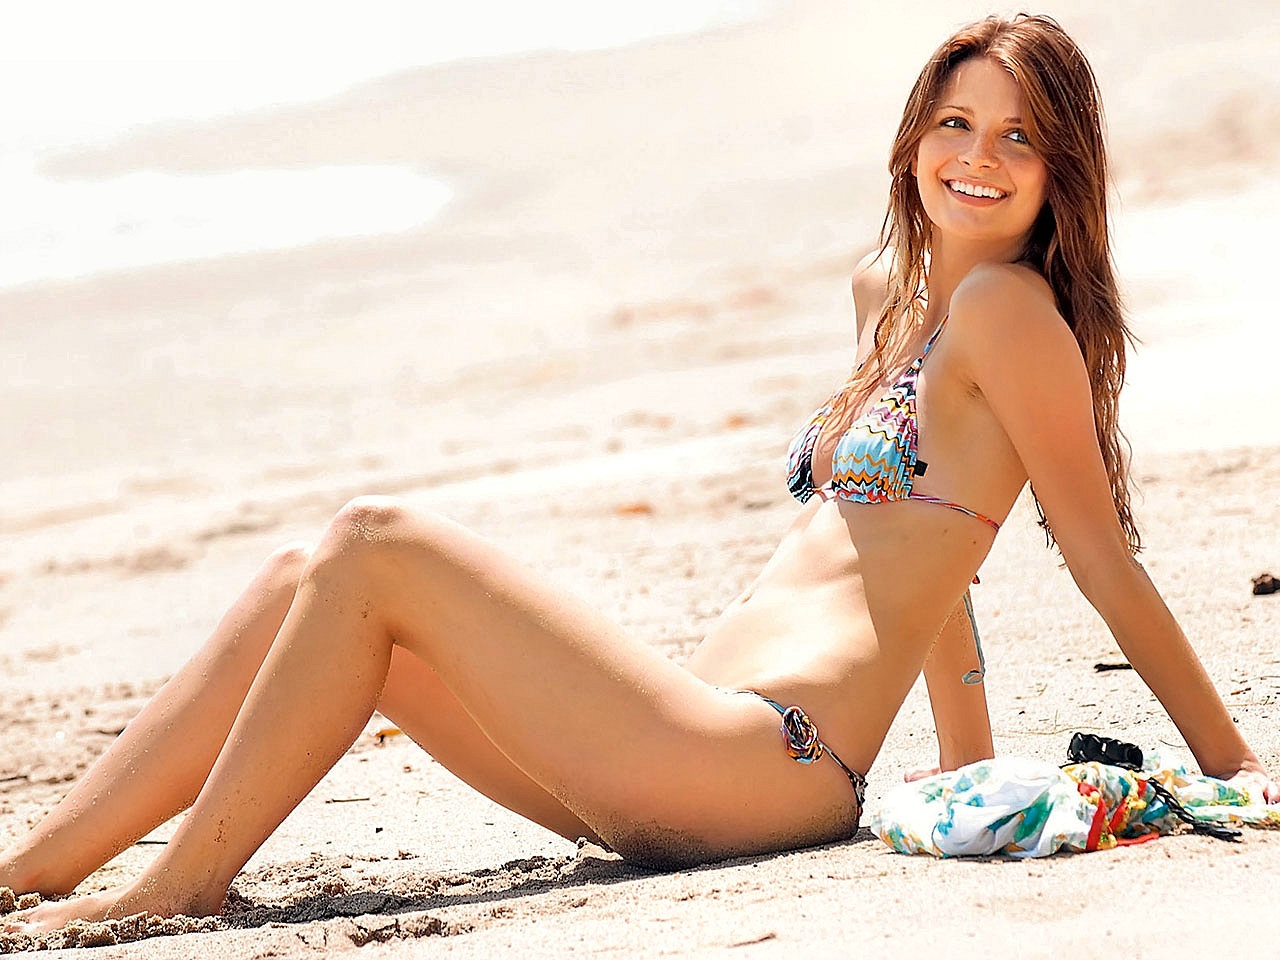 ... Mischa Barton bikini at the beach Mischa Barton hot wallpaper ...